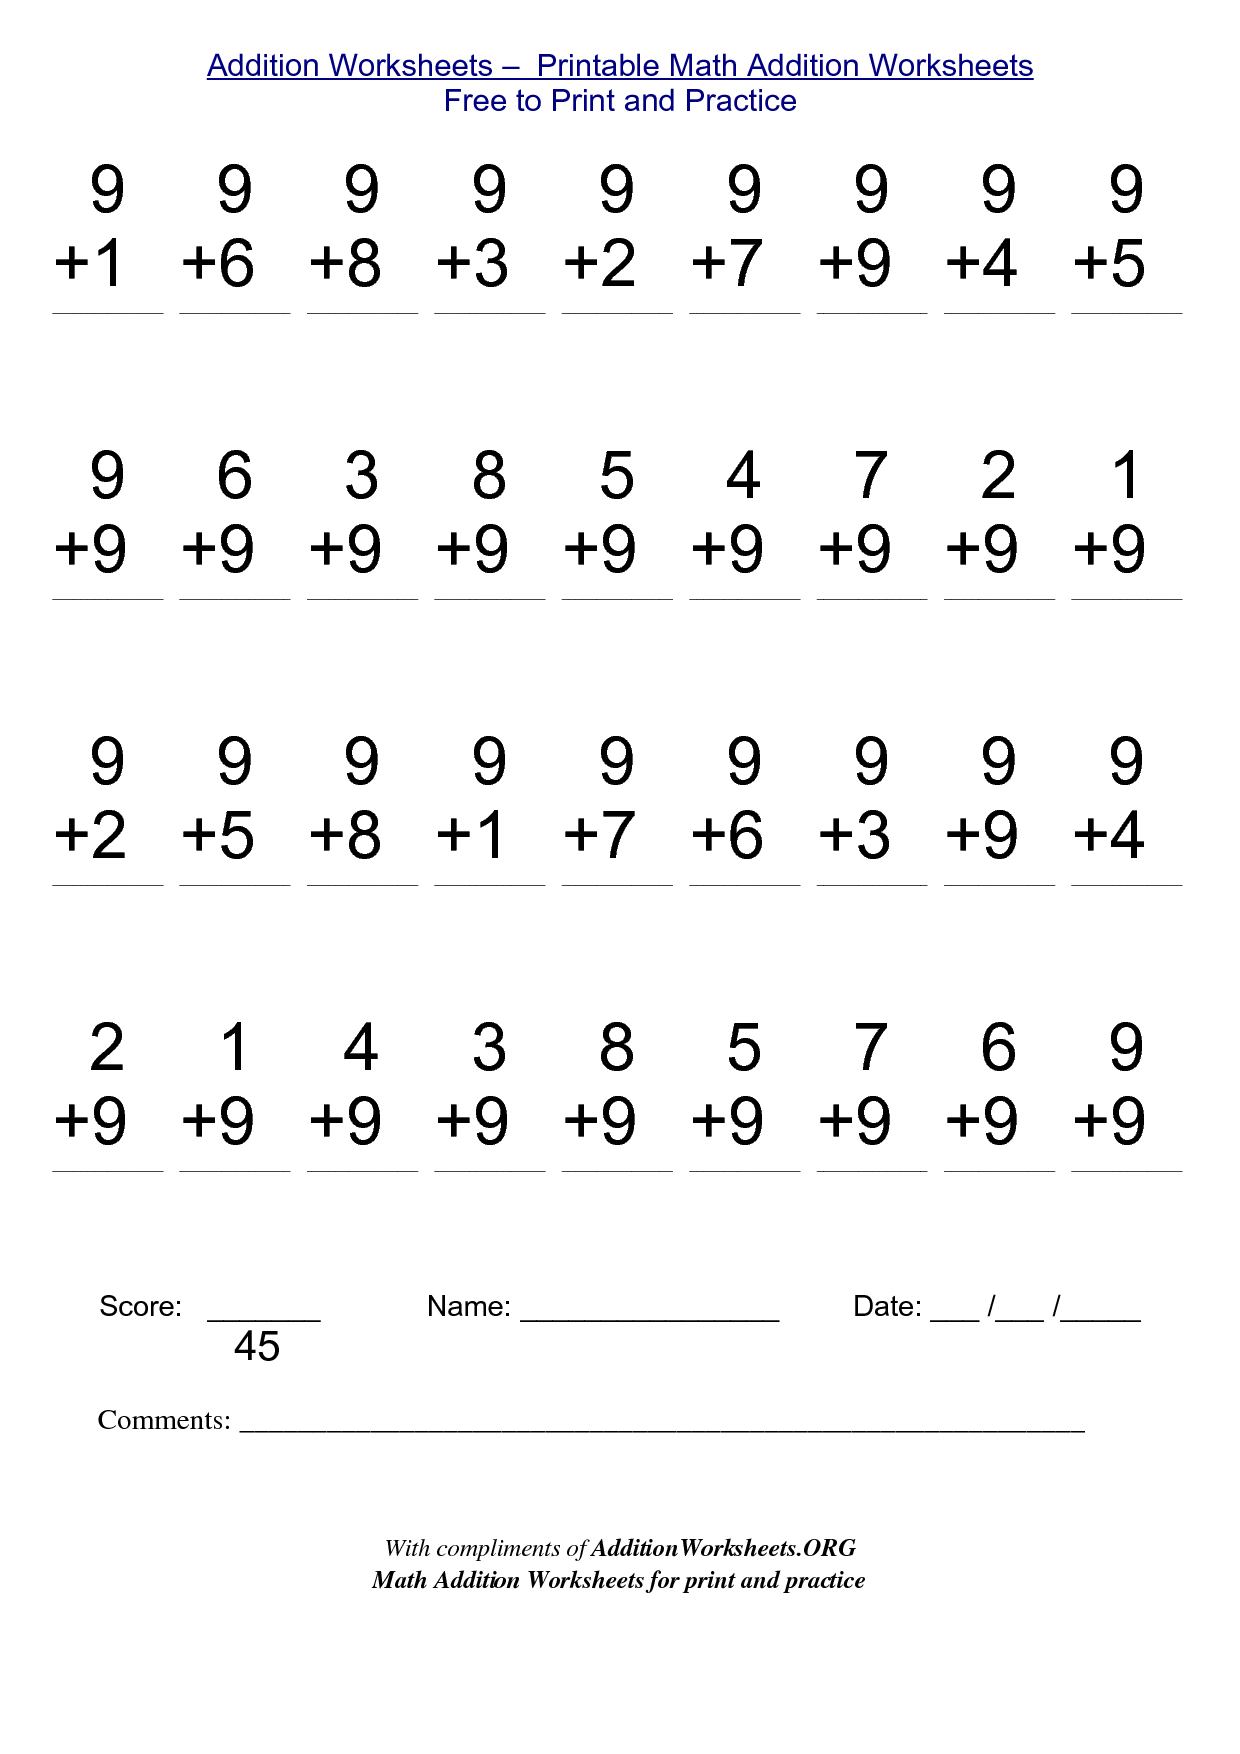 2Nd Grade Stuff To Print | Addition Worksheets - Printable Math | Free Printable Math Worksheets For 2Nd Grade